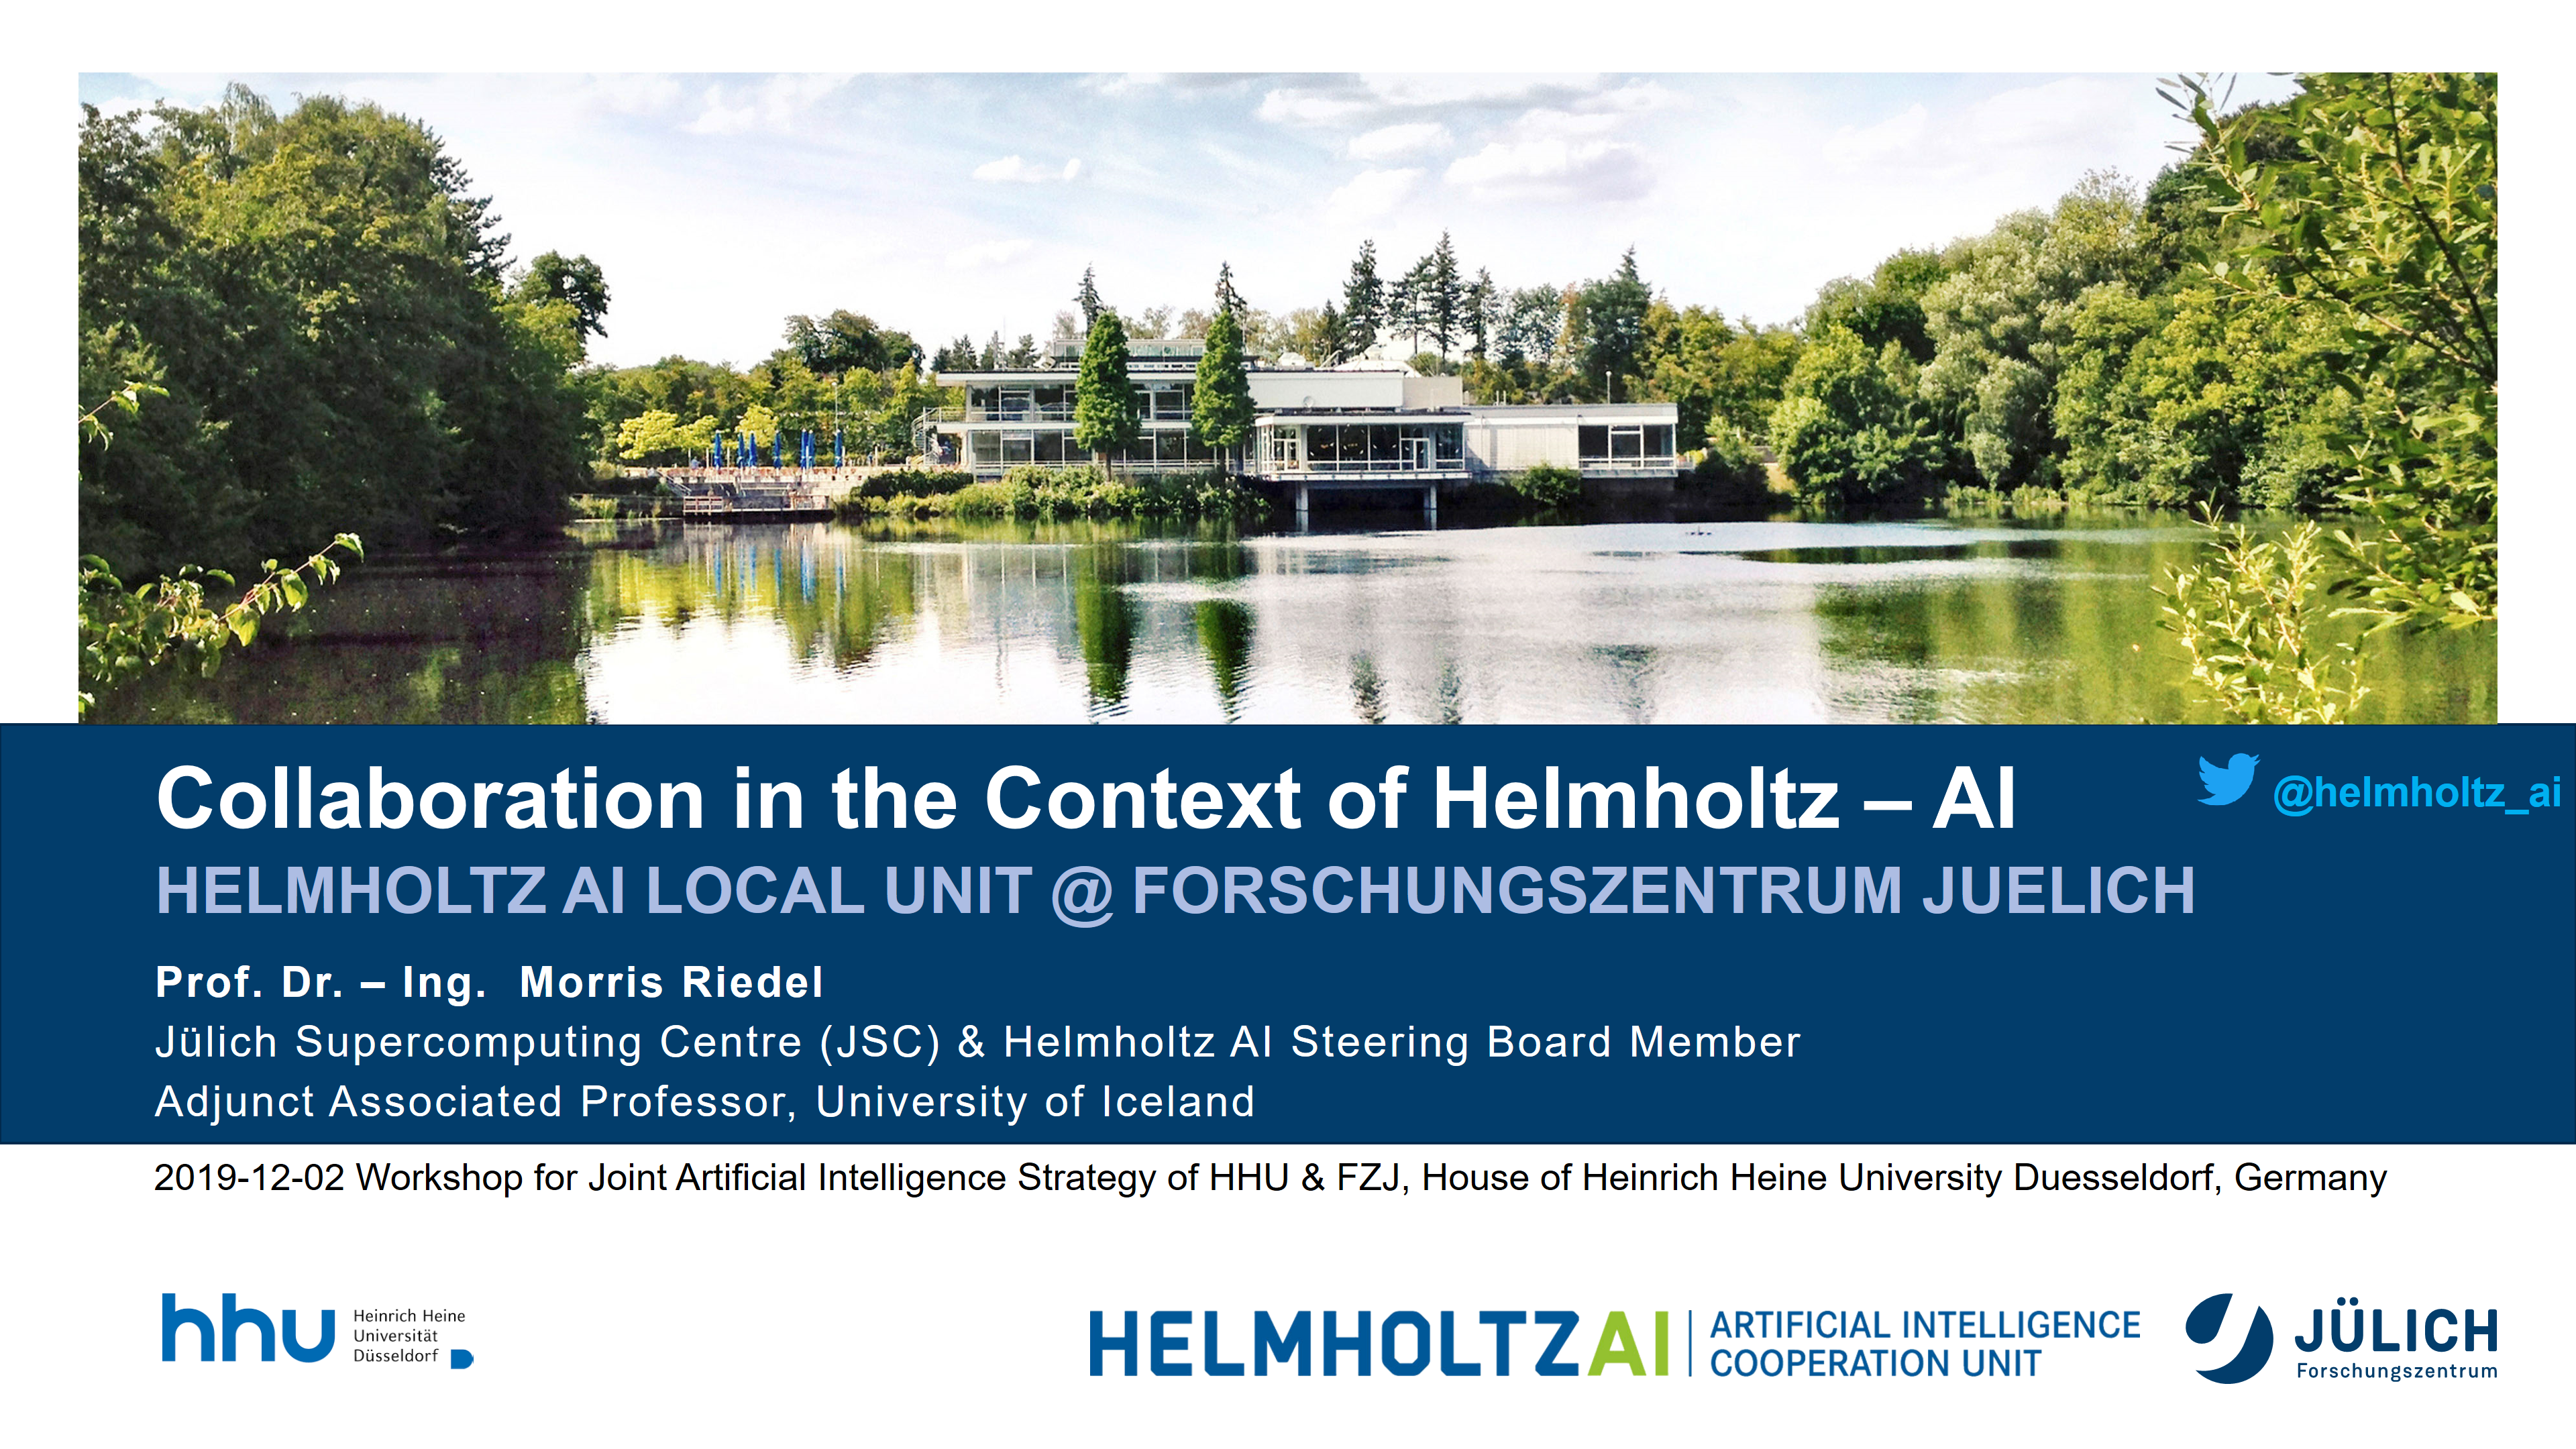 Collaboration in the Context of Helmholtz Artificial Intelligence